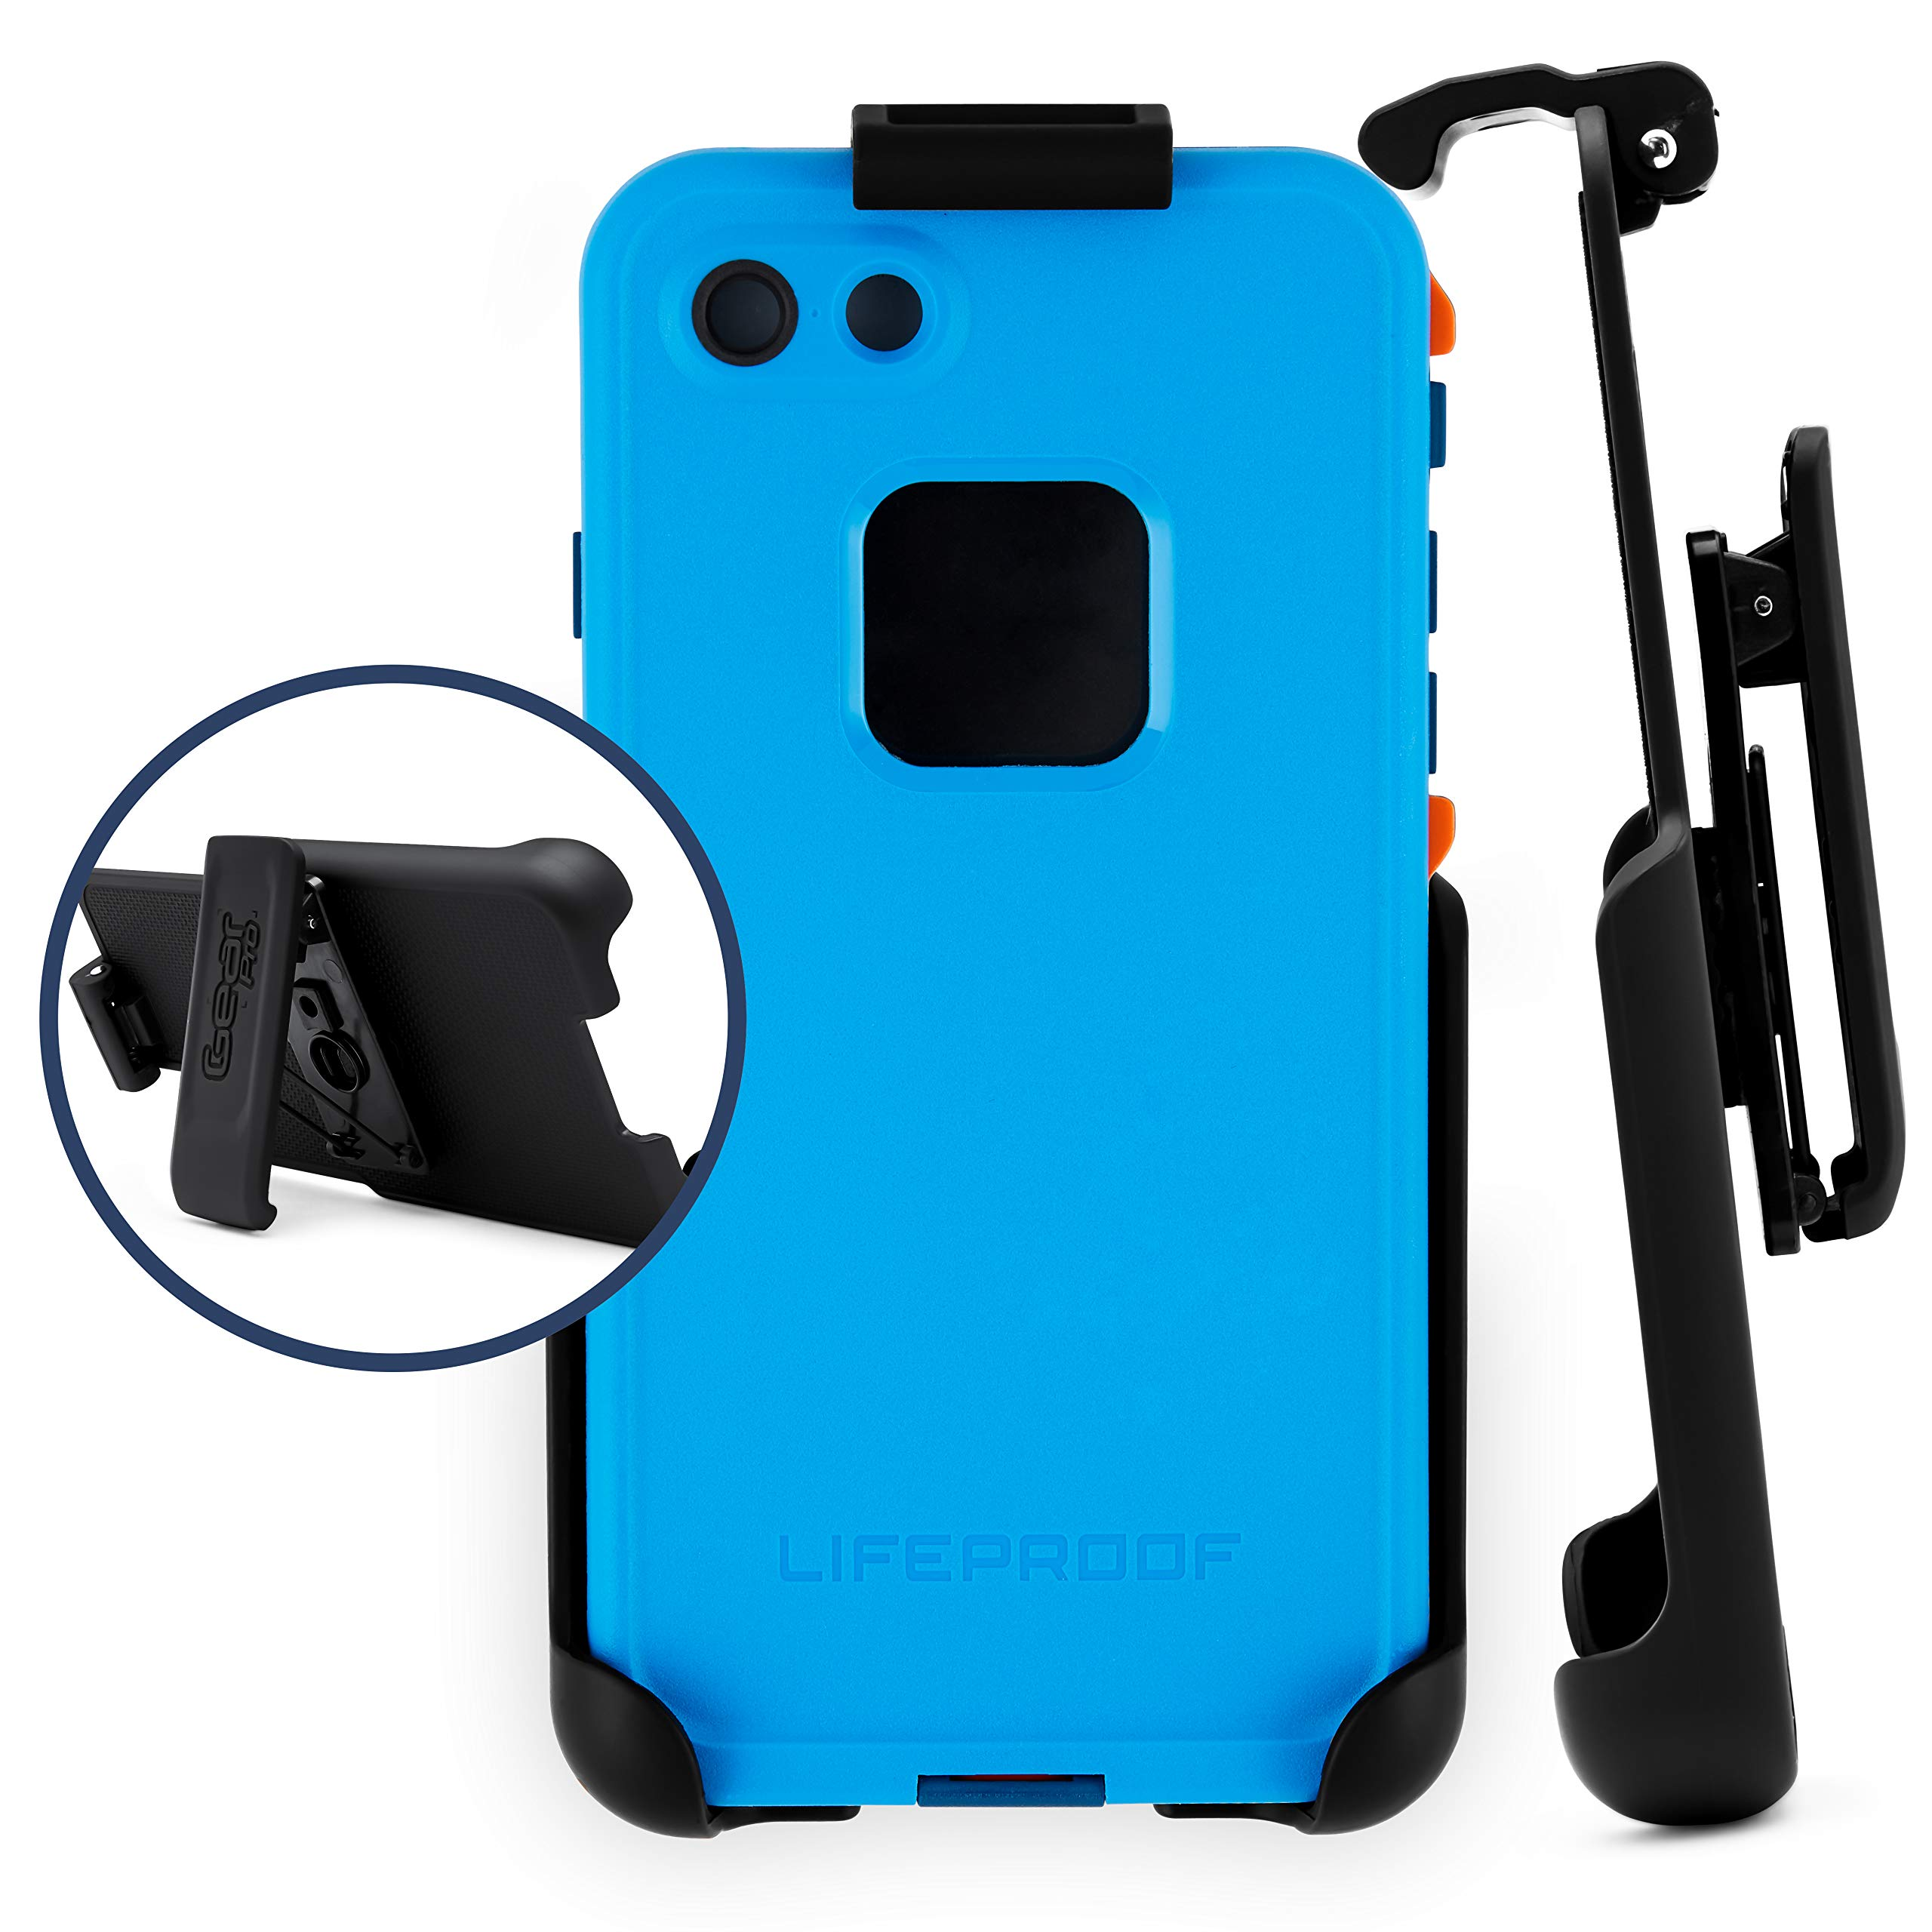 Belt Clip Holster Compatible with LifeProof FRE Series - iPhone 6, 6s, 7, 8   Easy Fit   Slim Design   Built in Kickstand [case not Included]